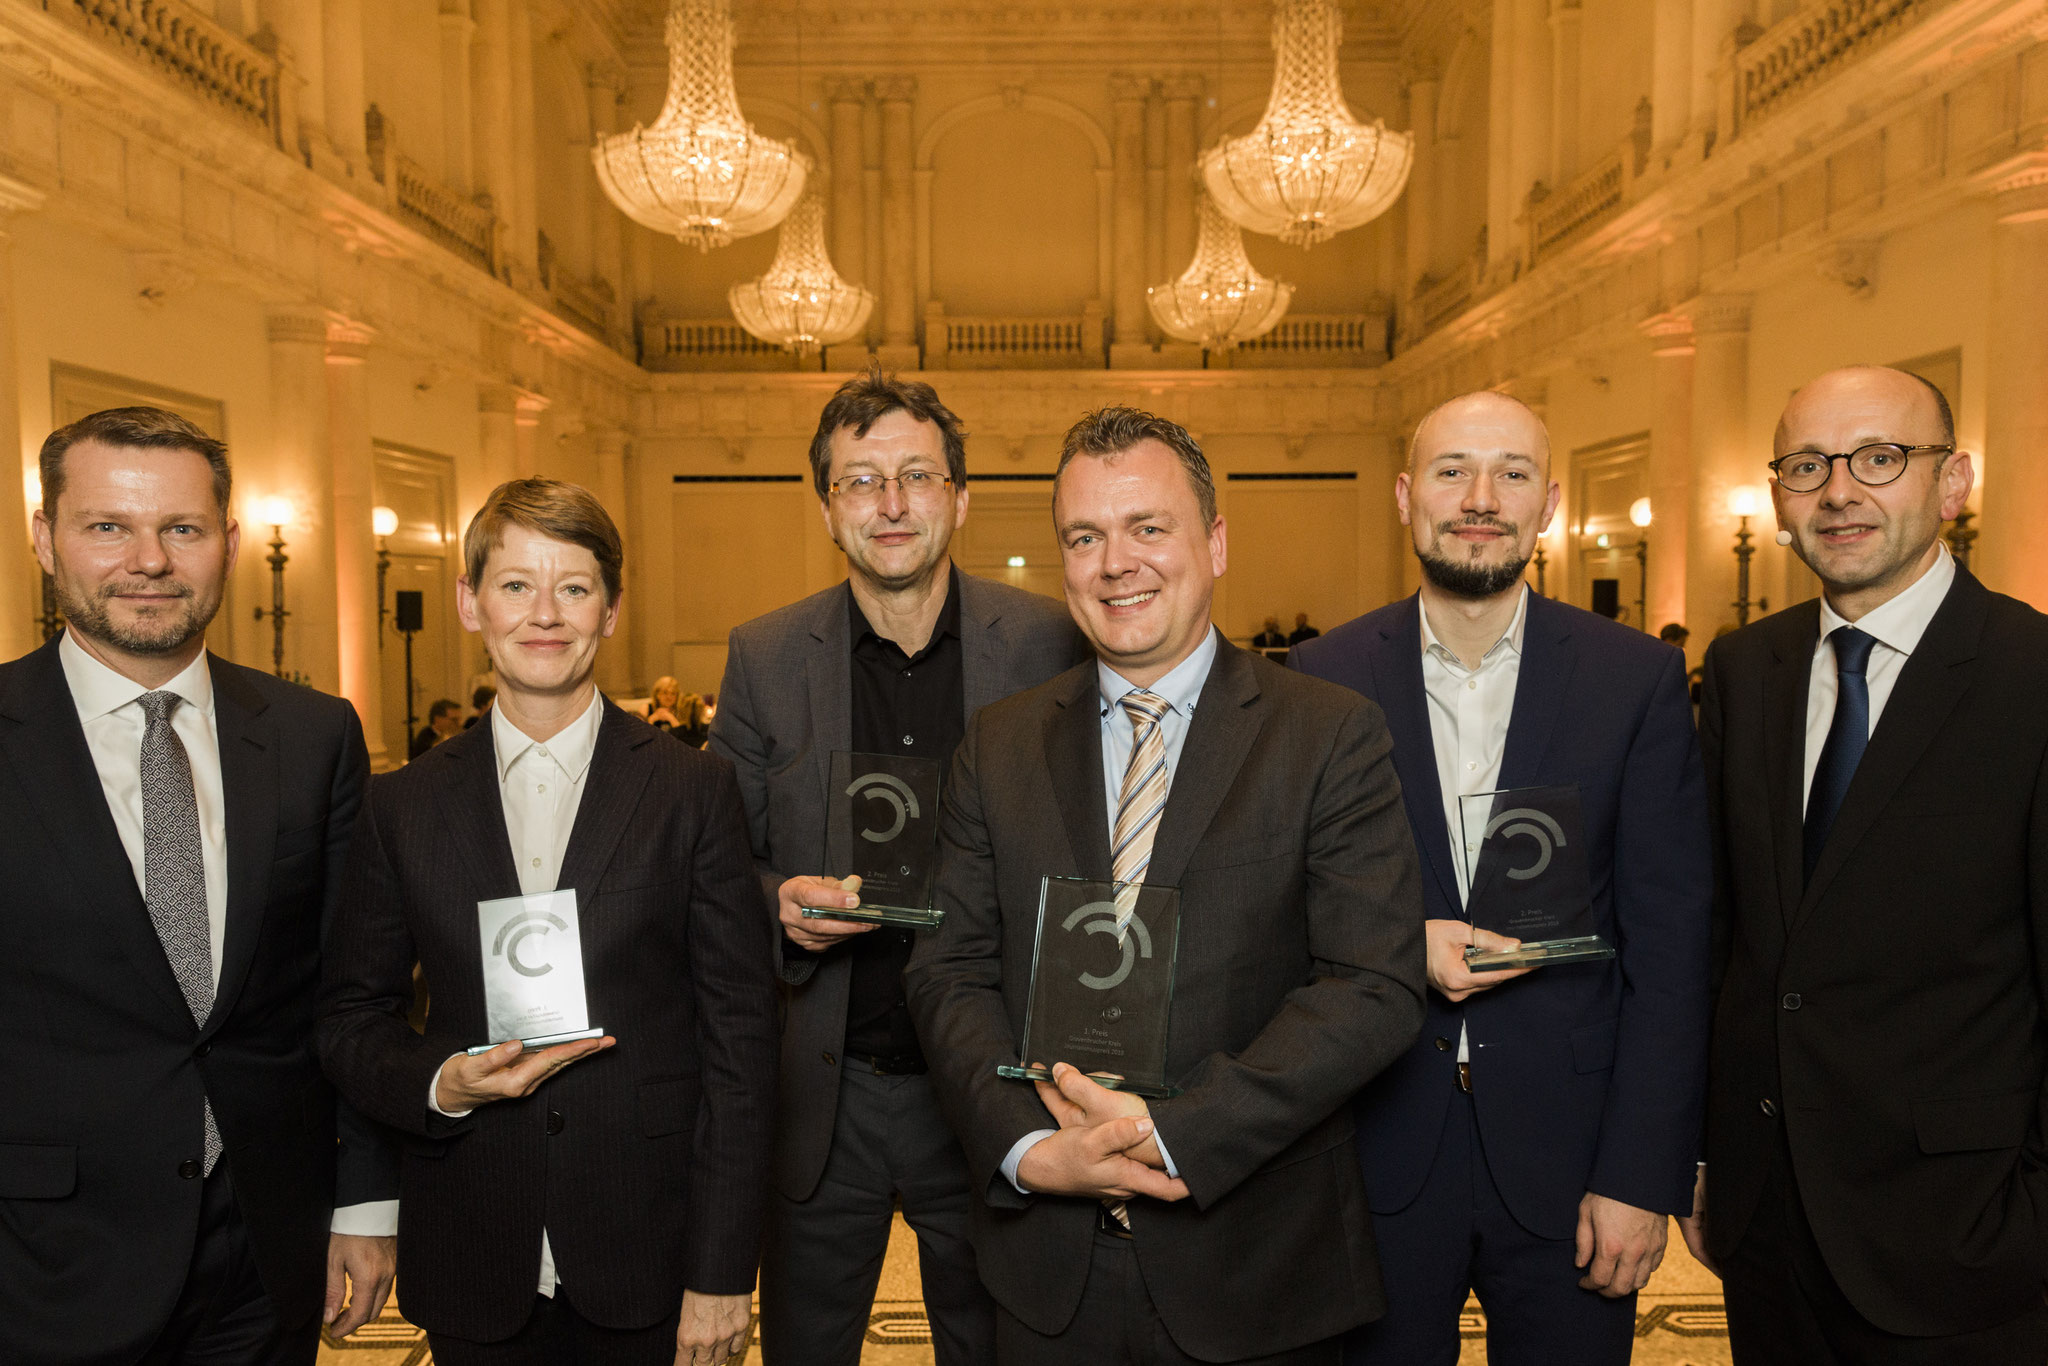 Dirk Andres, Catherine Hoffmann, Martin-Werner Buchenau, Lars Petersen, Anis Micijevic, Lucas Flöther. Prize-winners and laudators Journalism Prize © 2018 Sven Döring